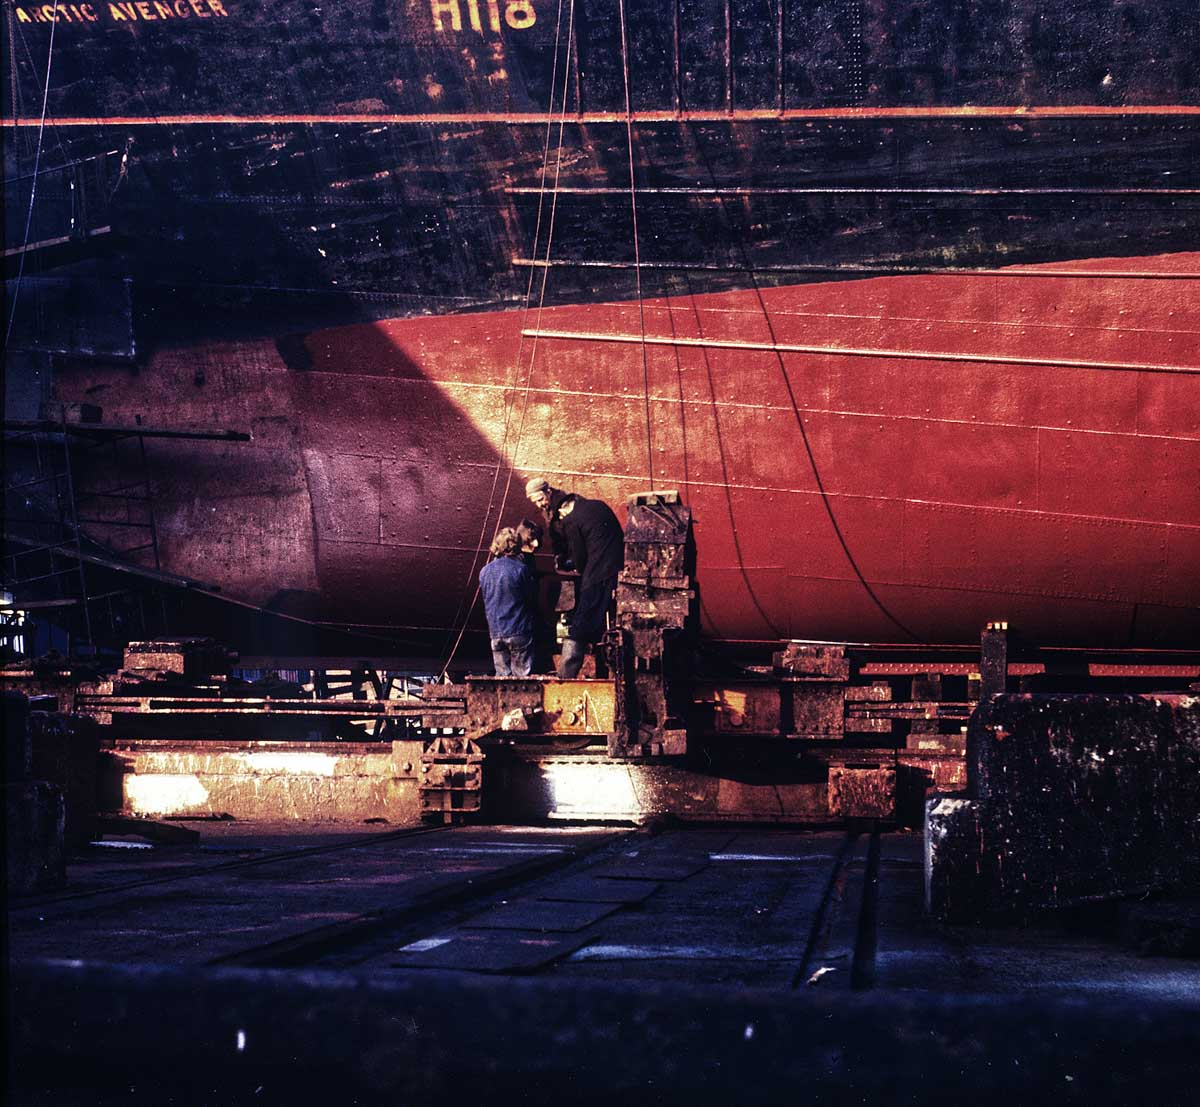 Repairing a deep sea trawler, Grimsby Docks, Grimsby, UK, Mamiya C33, 105 Sekor, Ektachrome